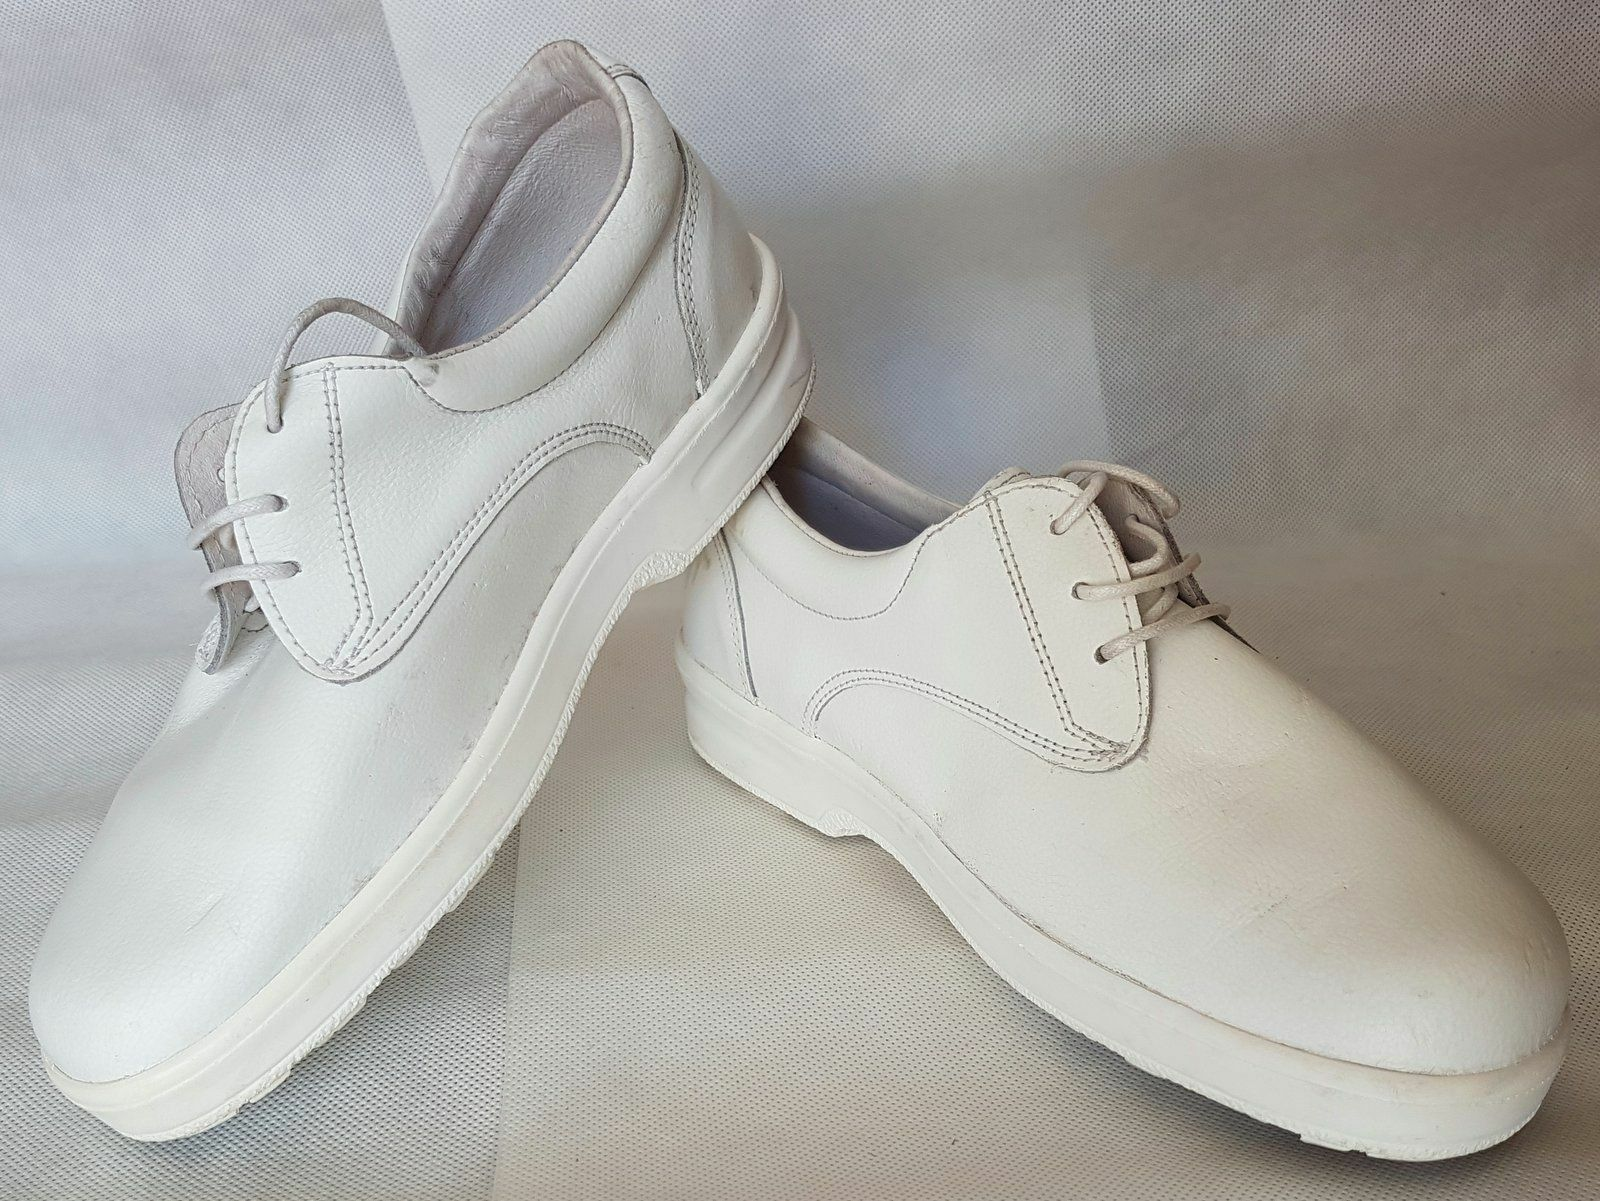 Toffeln Leather Lite Antistatic size 41/8 white